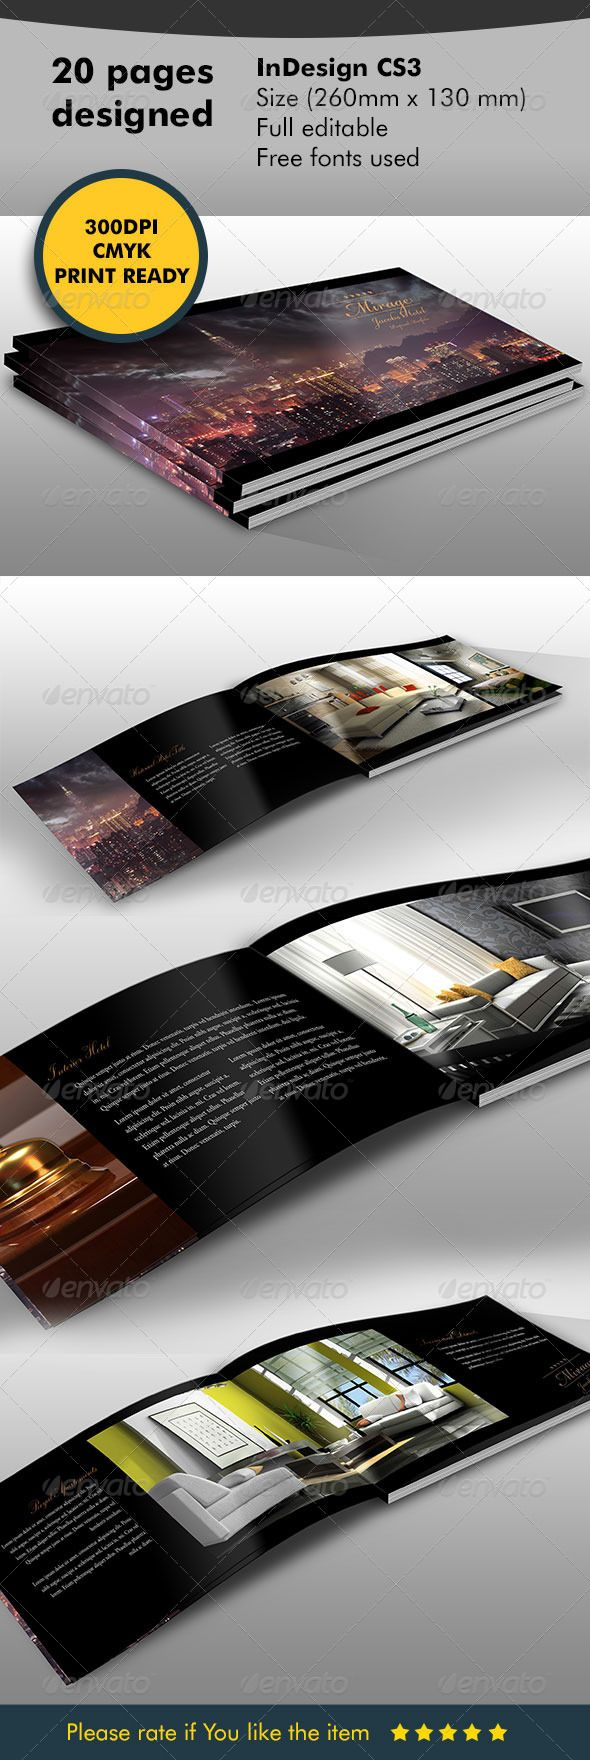 Brochure - Catalog Hotel | Brochures, Template and Photography logos